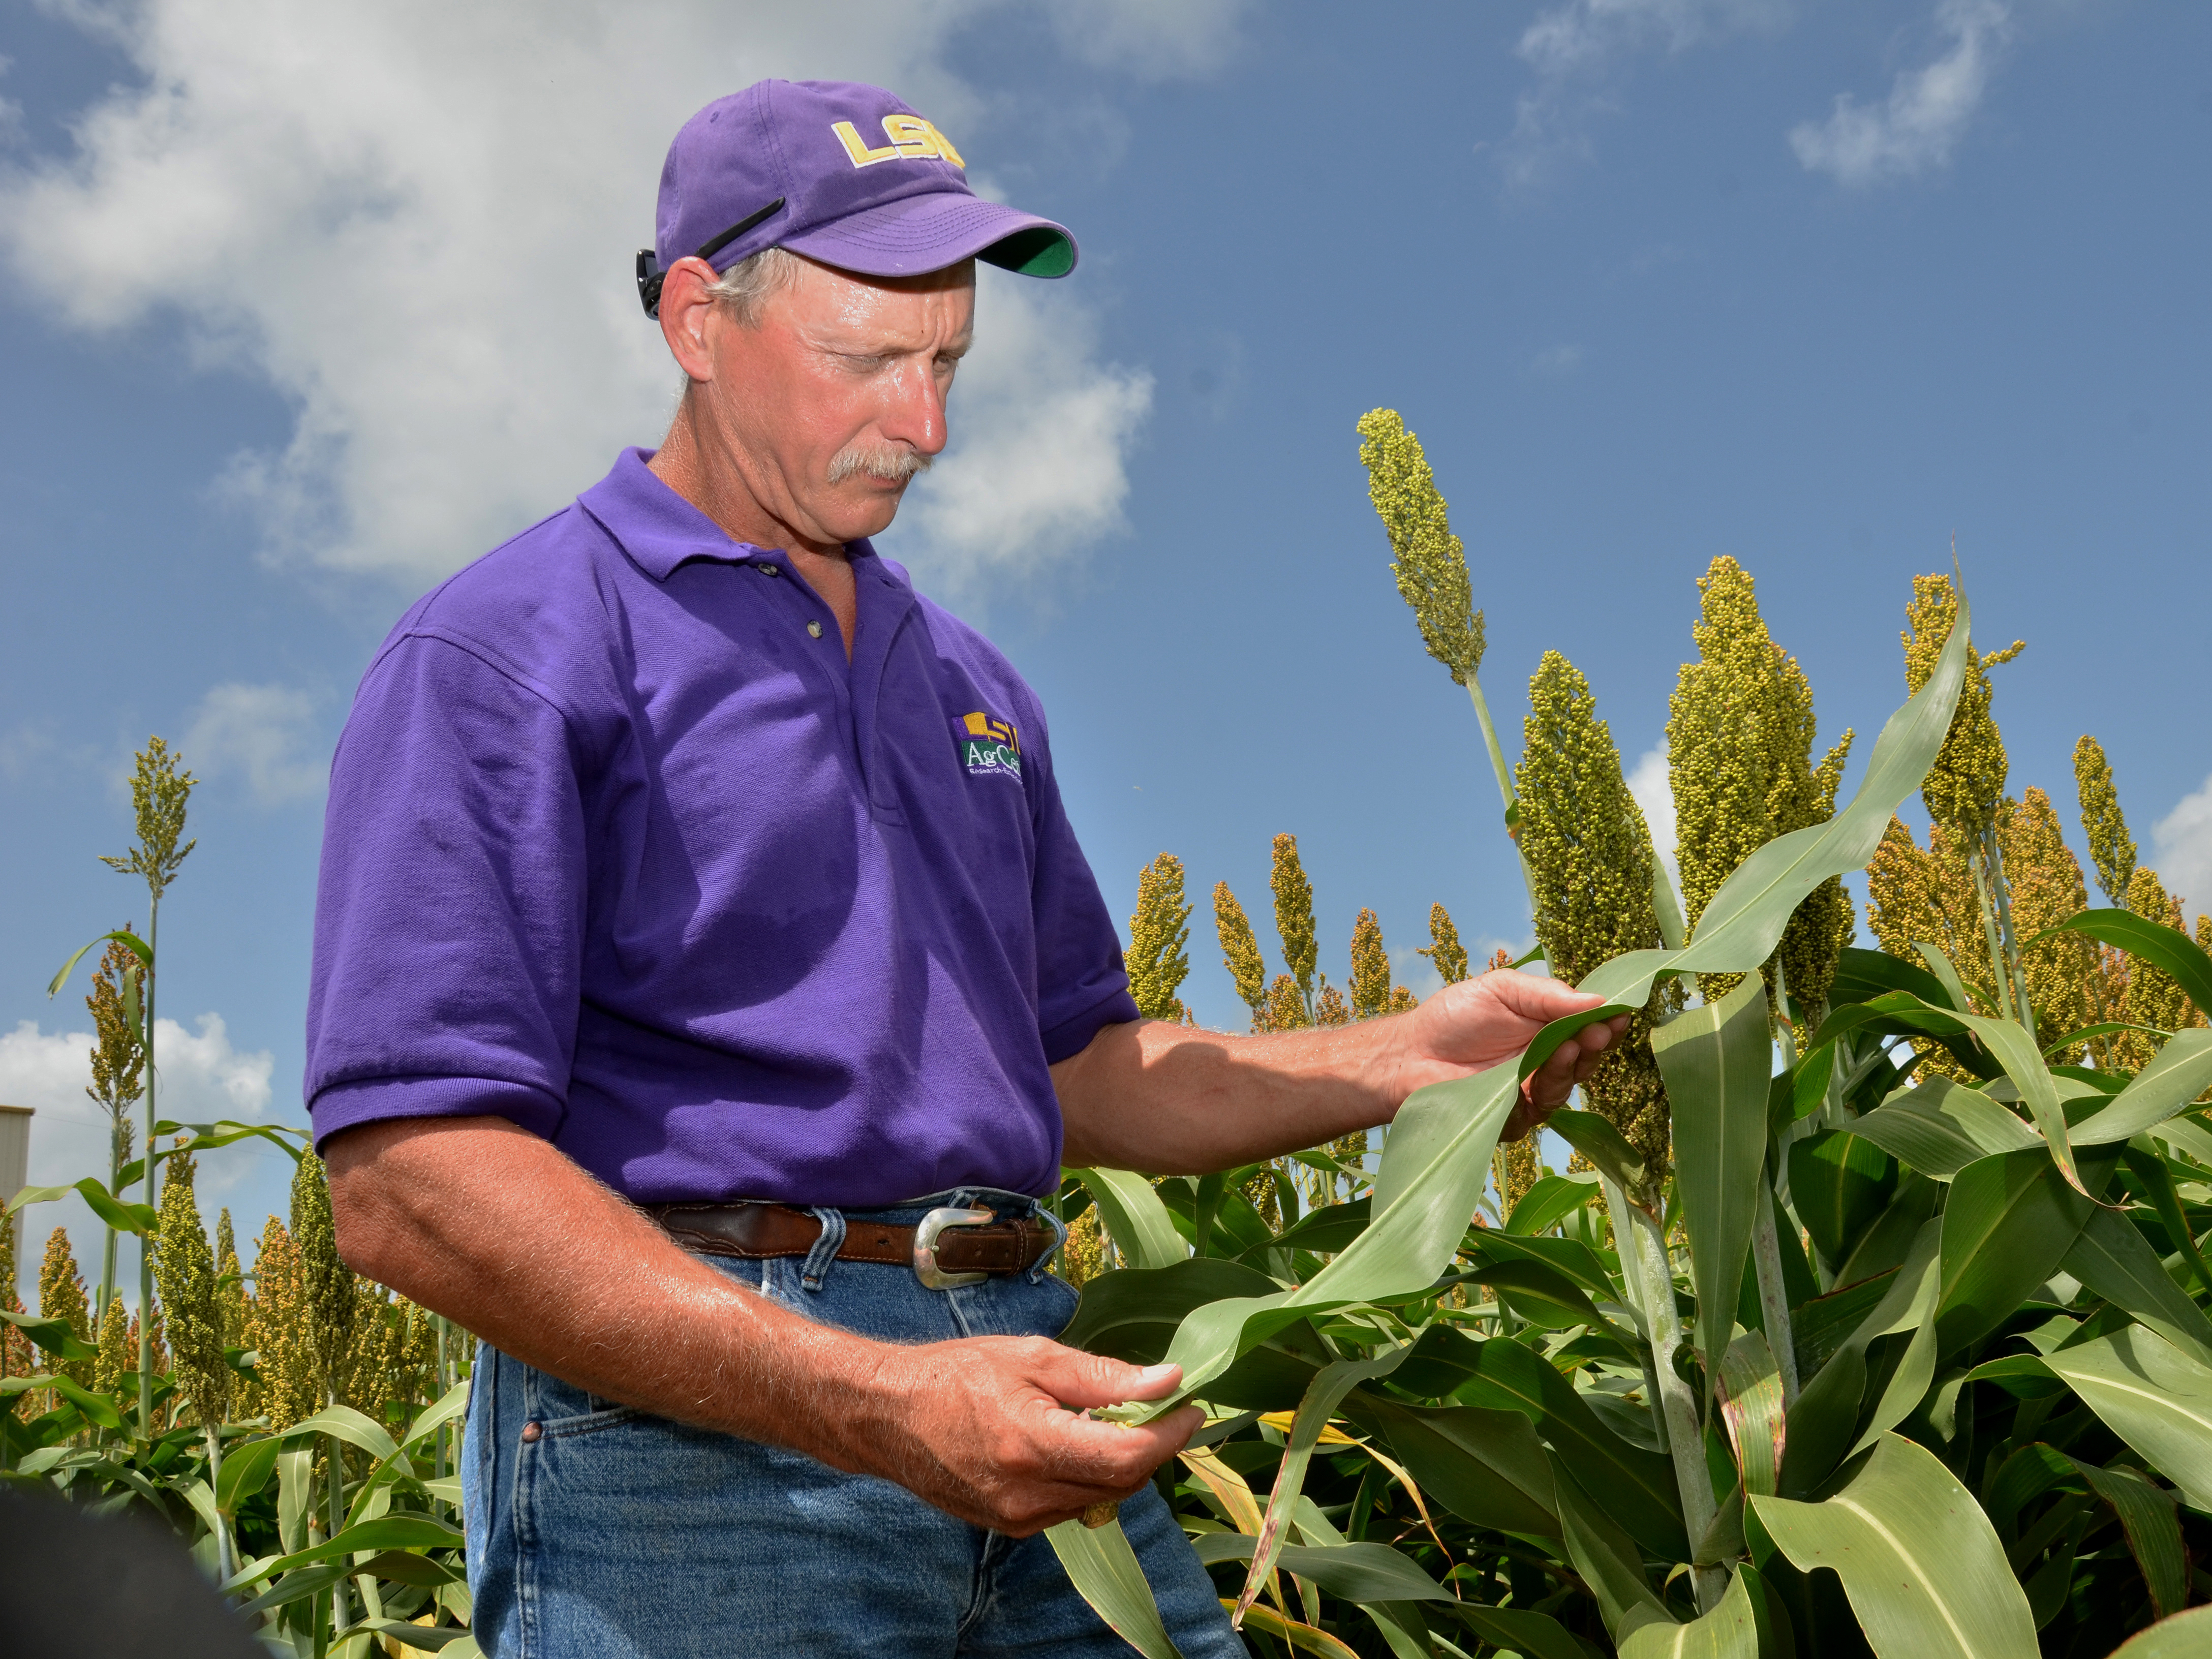 Kerns in sorghum field